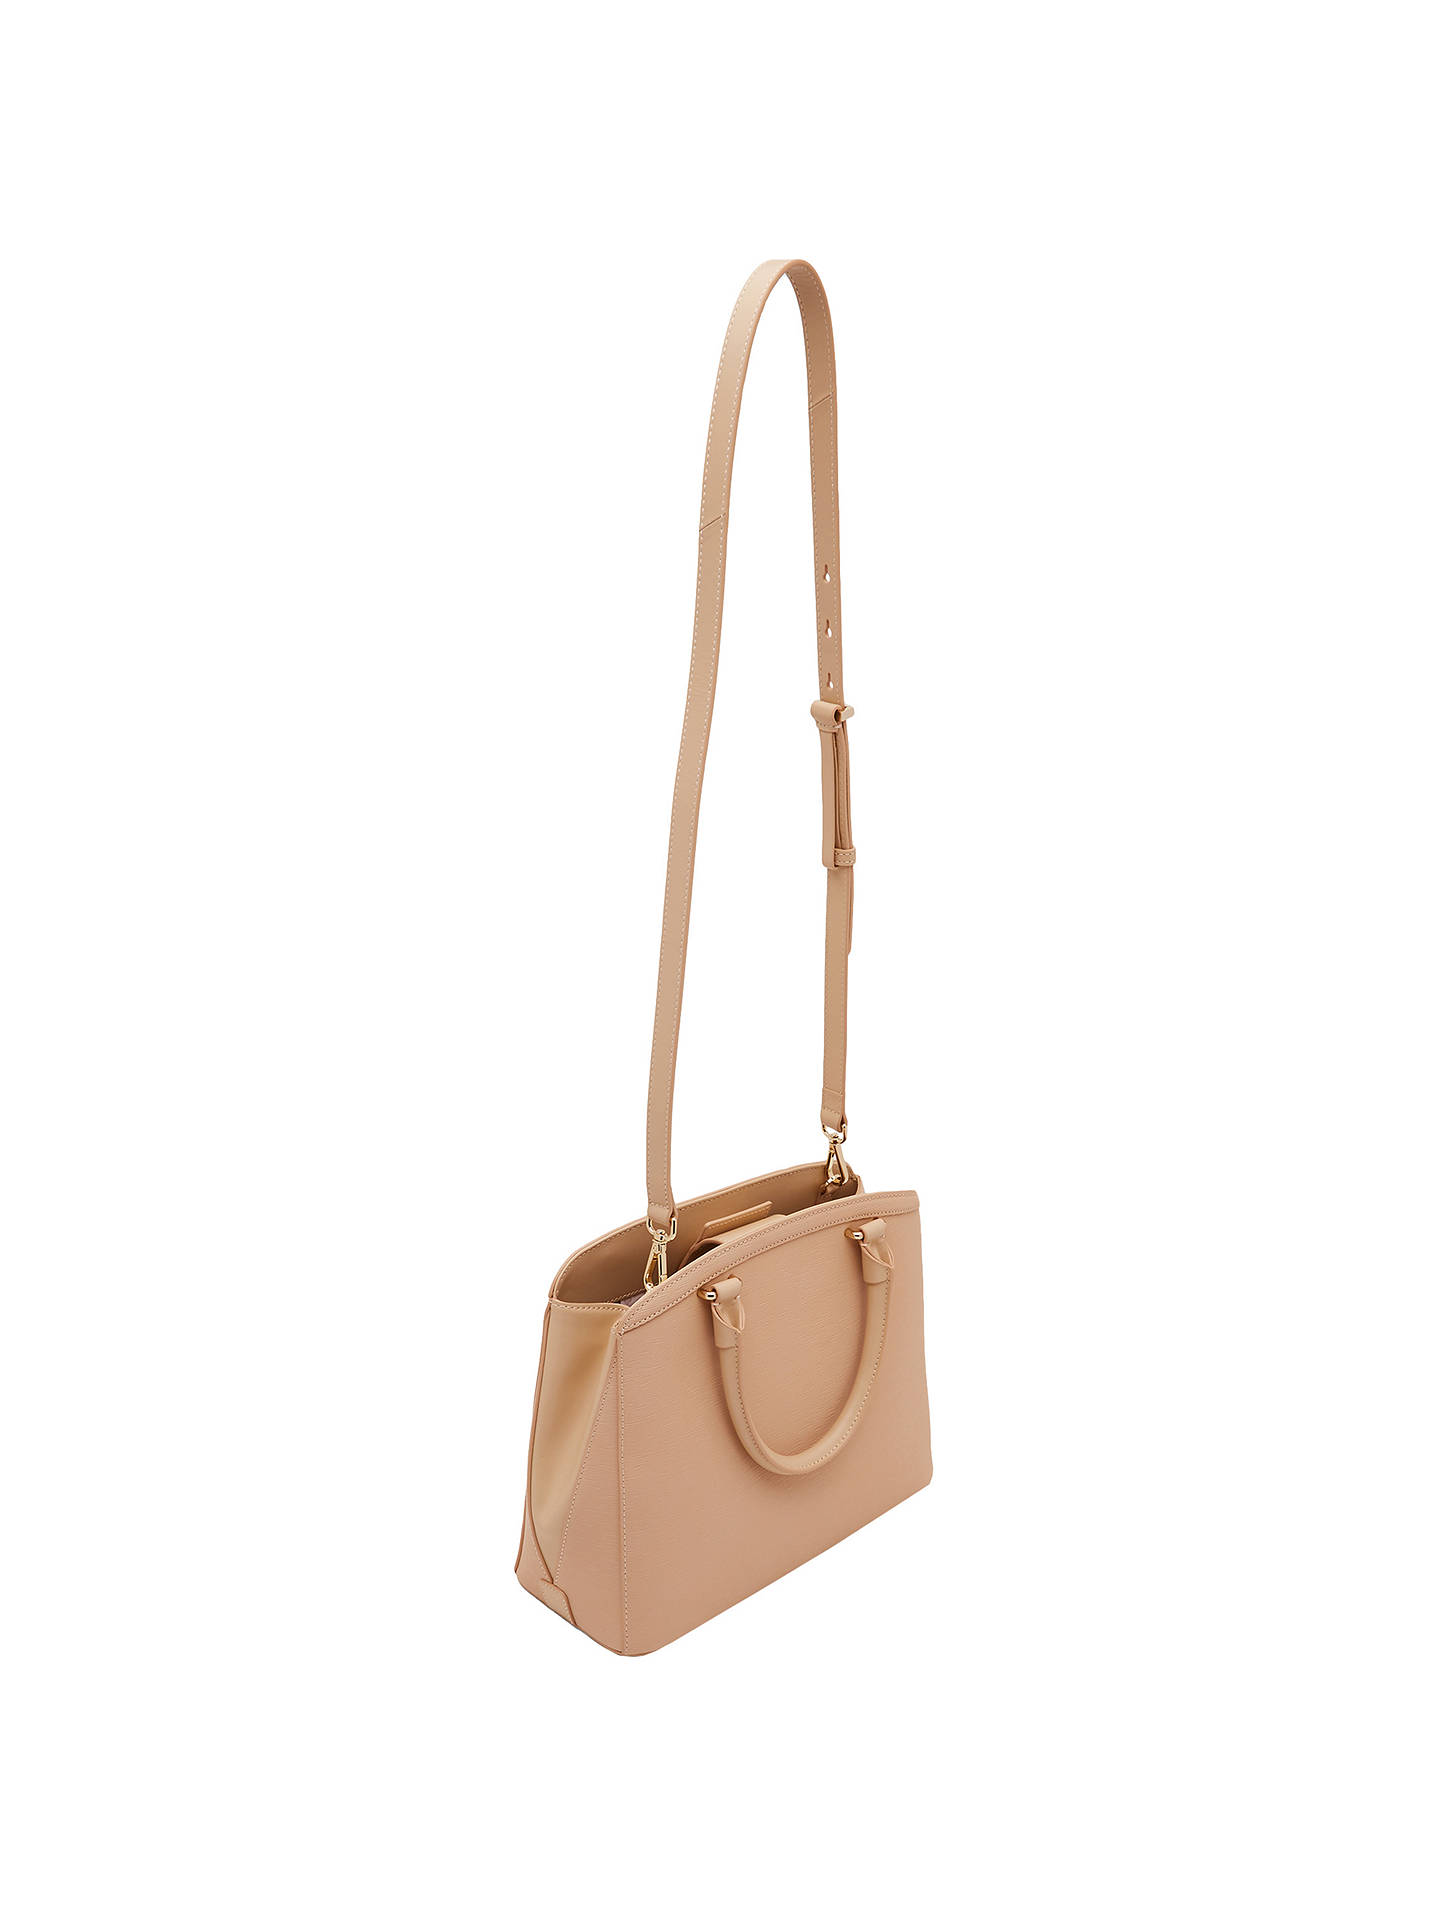 003930594d081 Ted Baker Tealia Curved Bow Small Leather Tote Bag at John Lewis ...